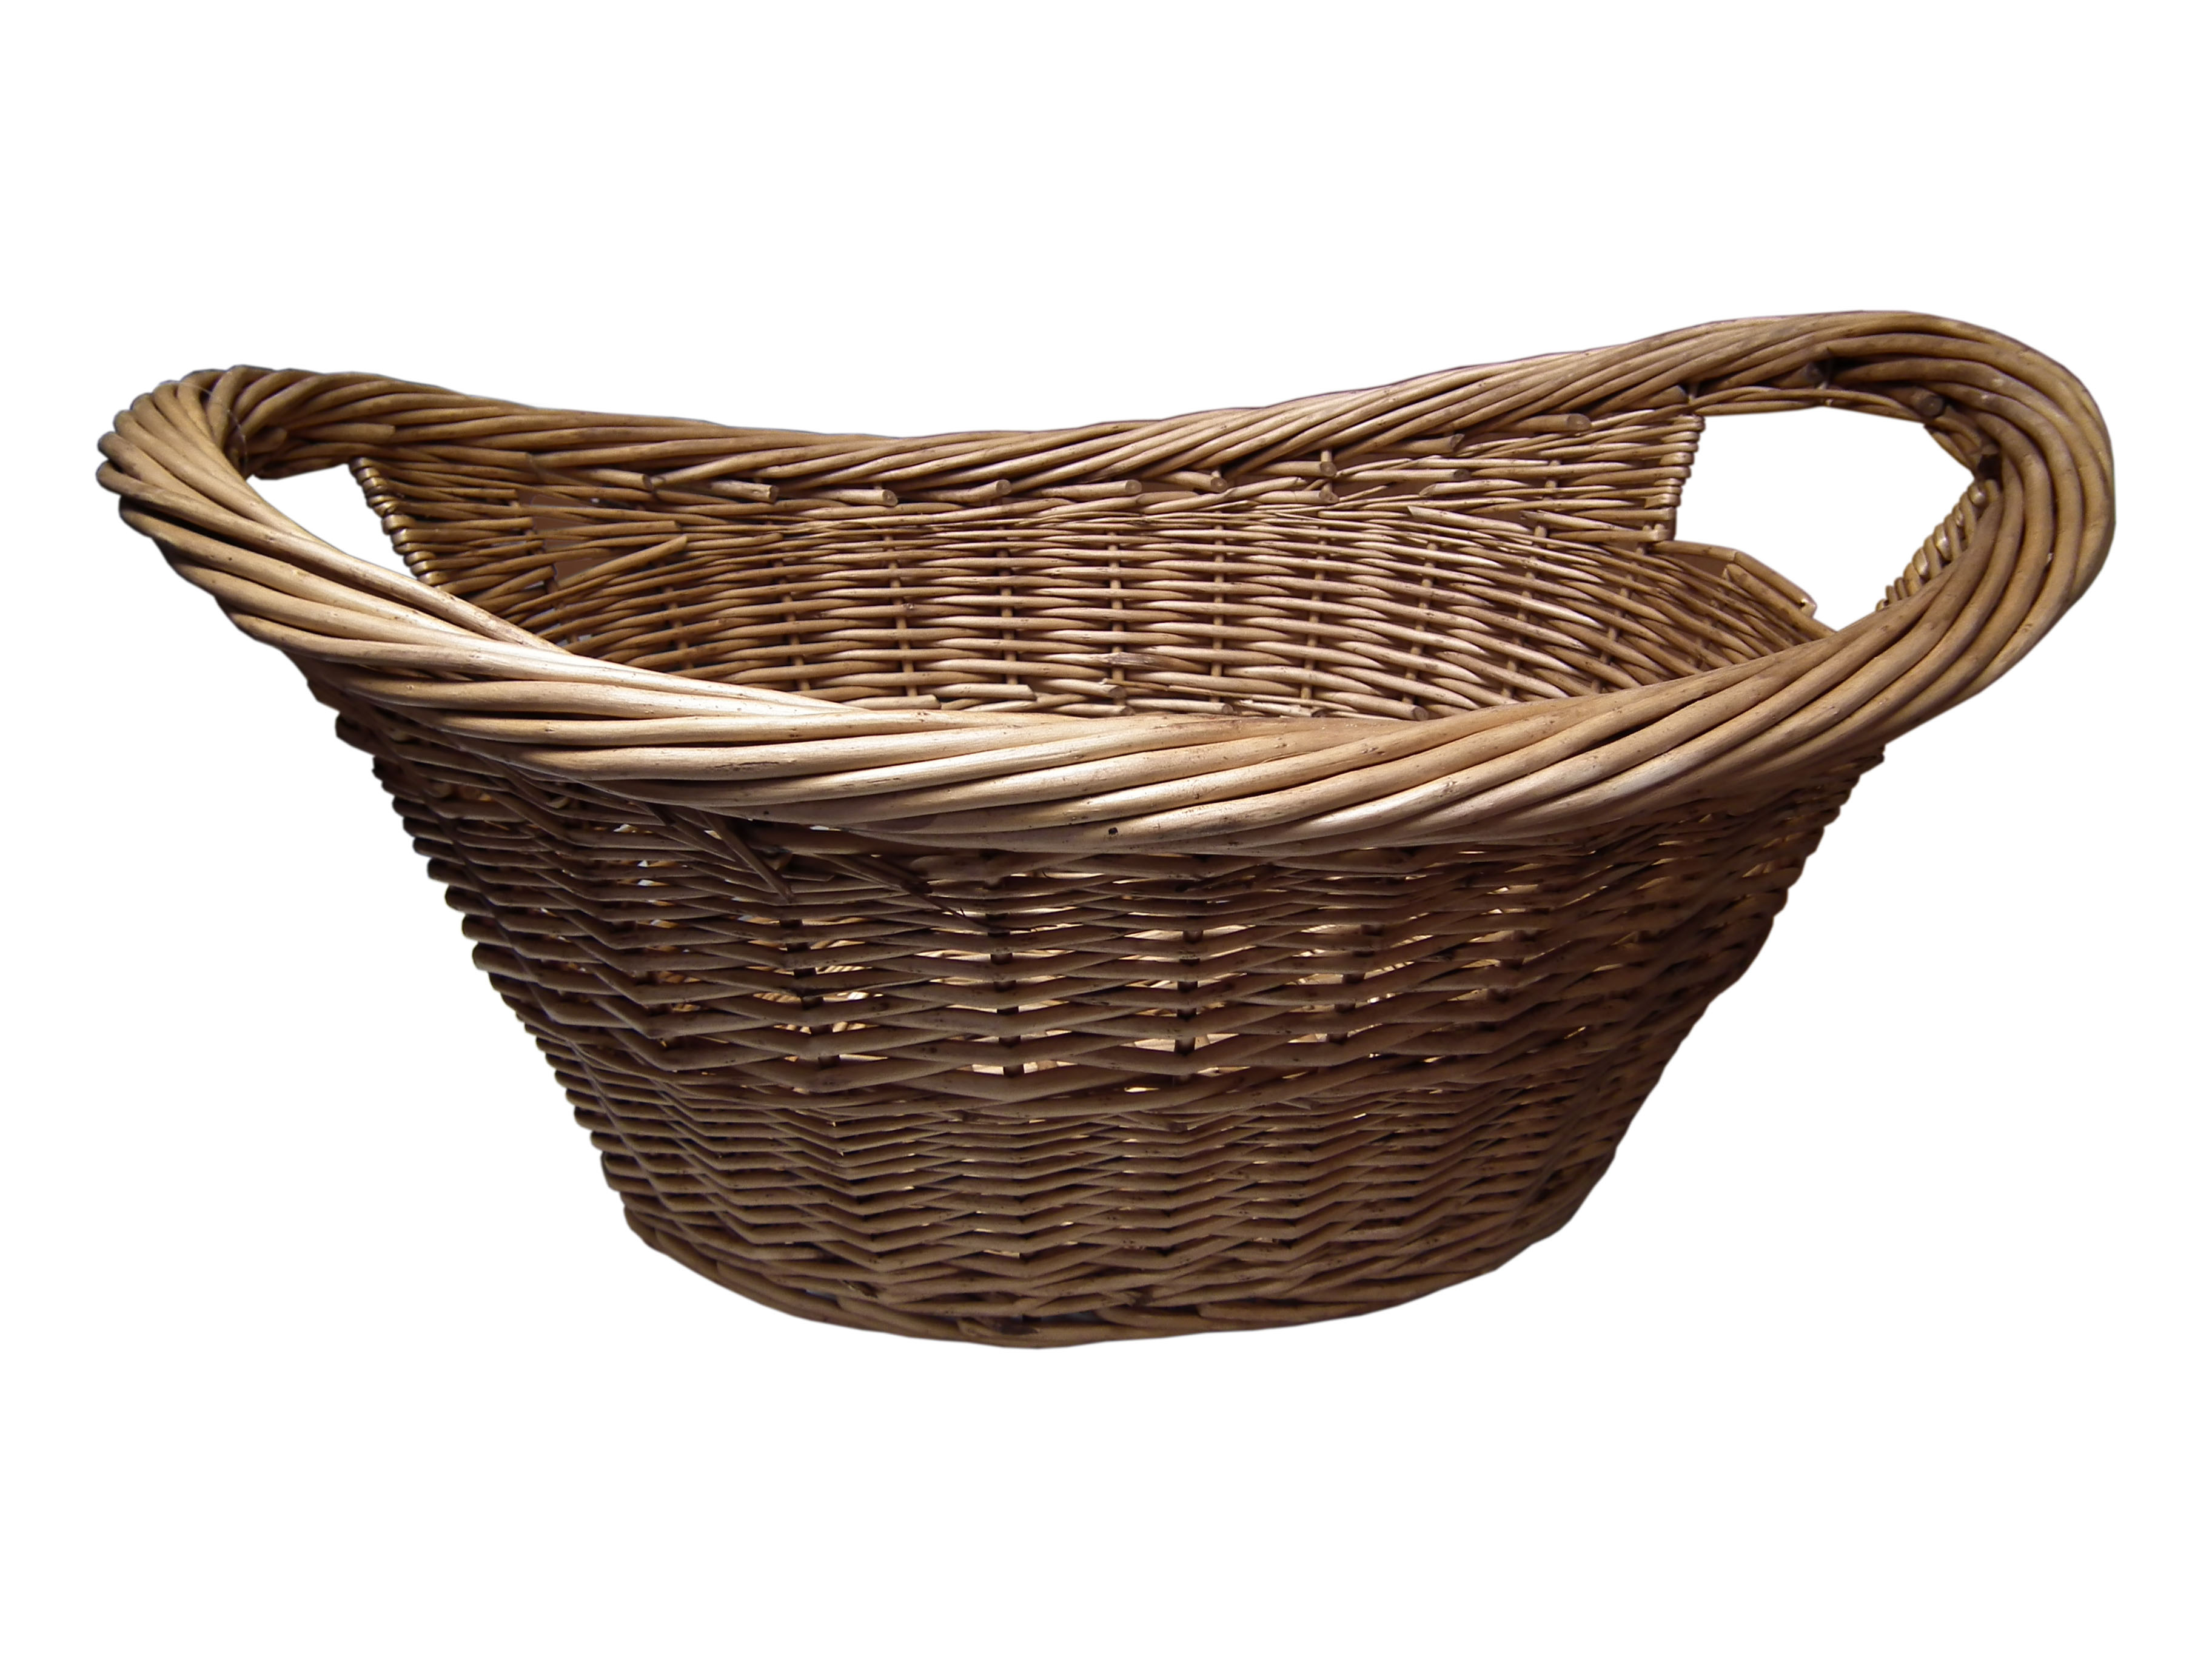 Wicker Woven Laundry Basket Bamboo Seagrass Clothing